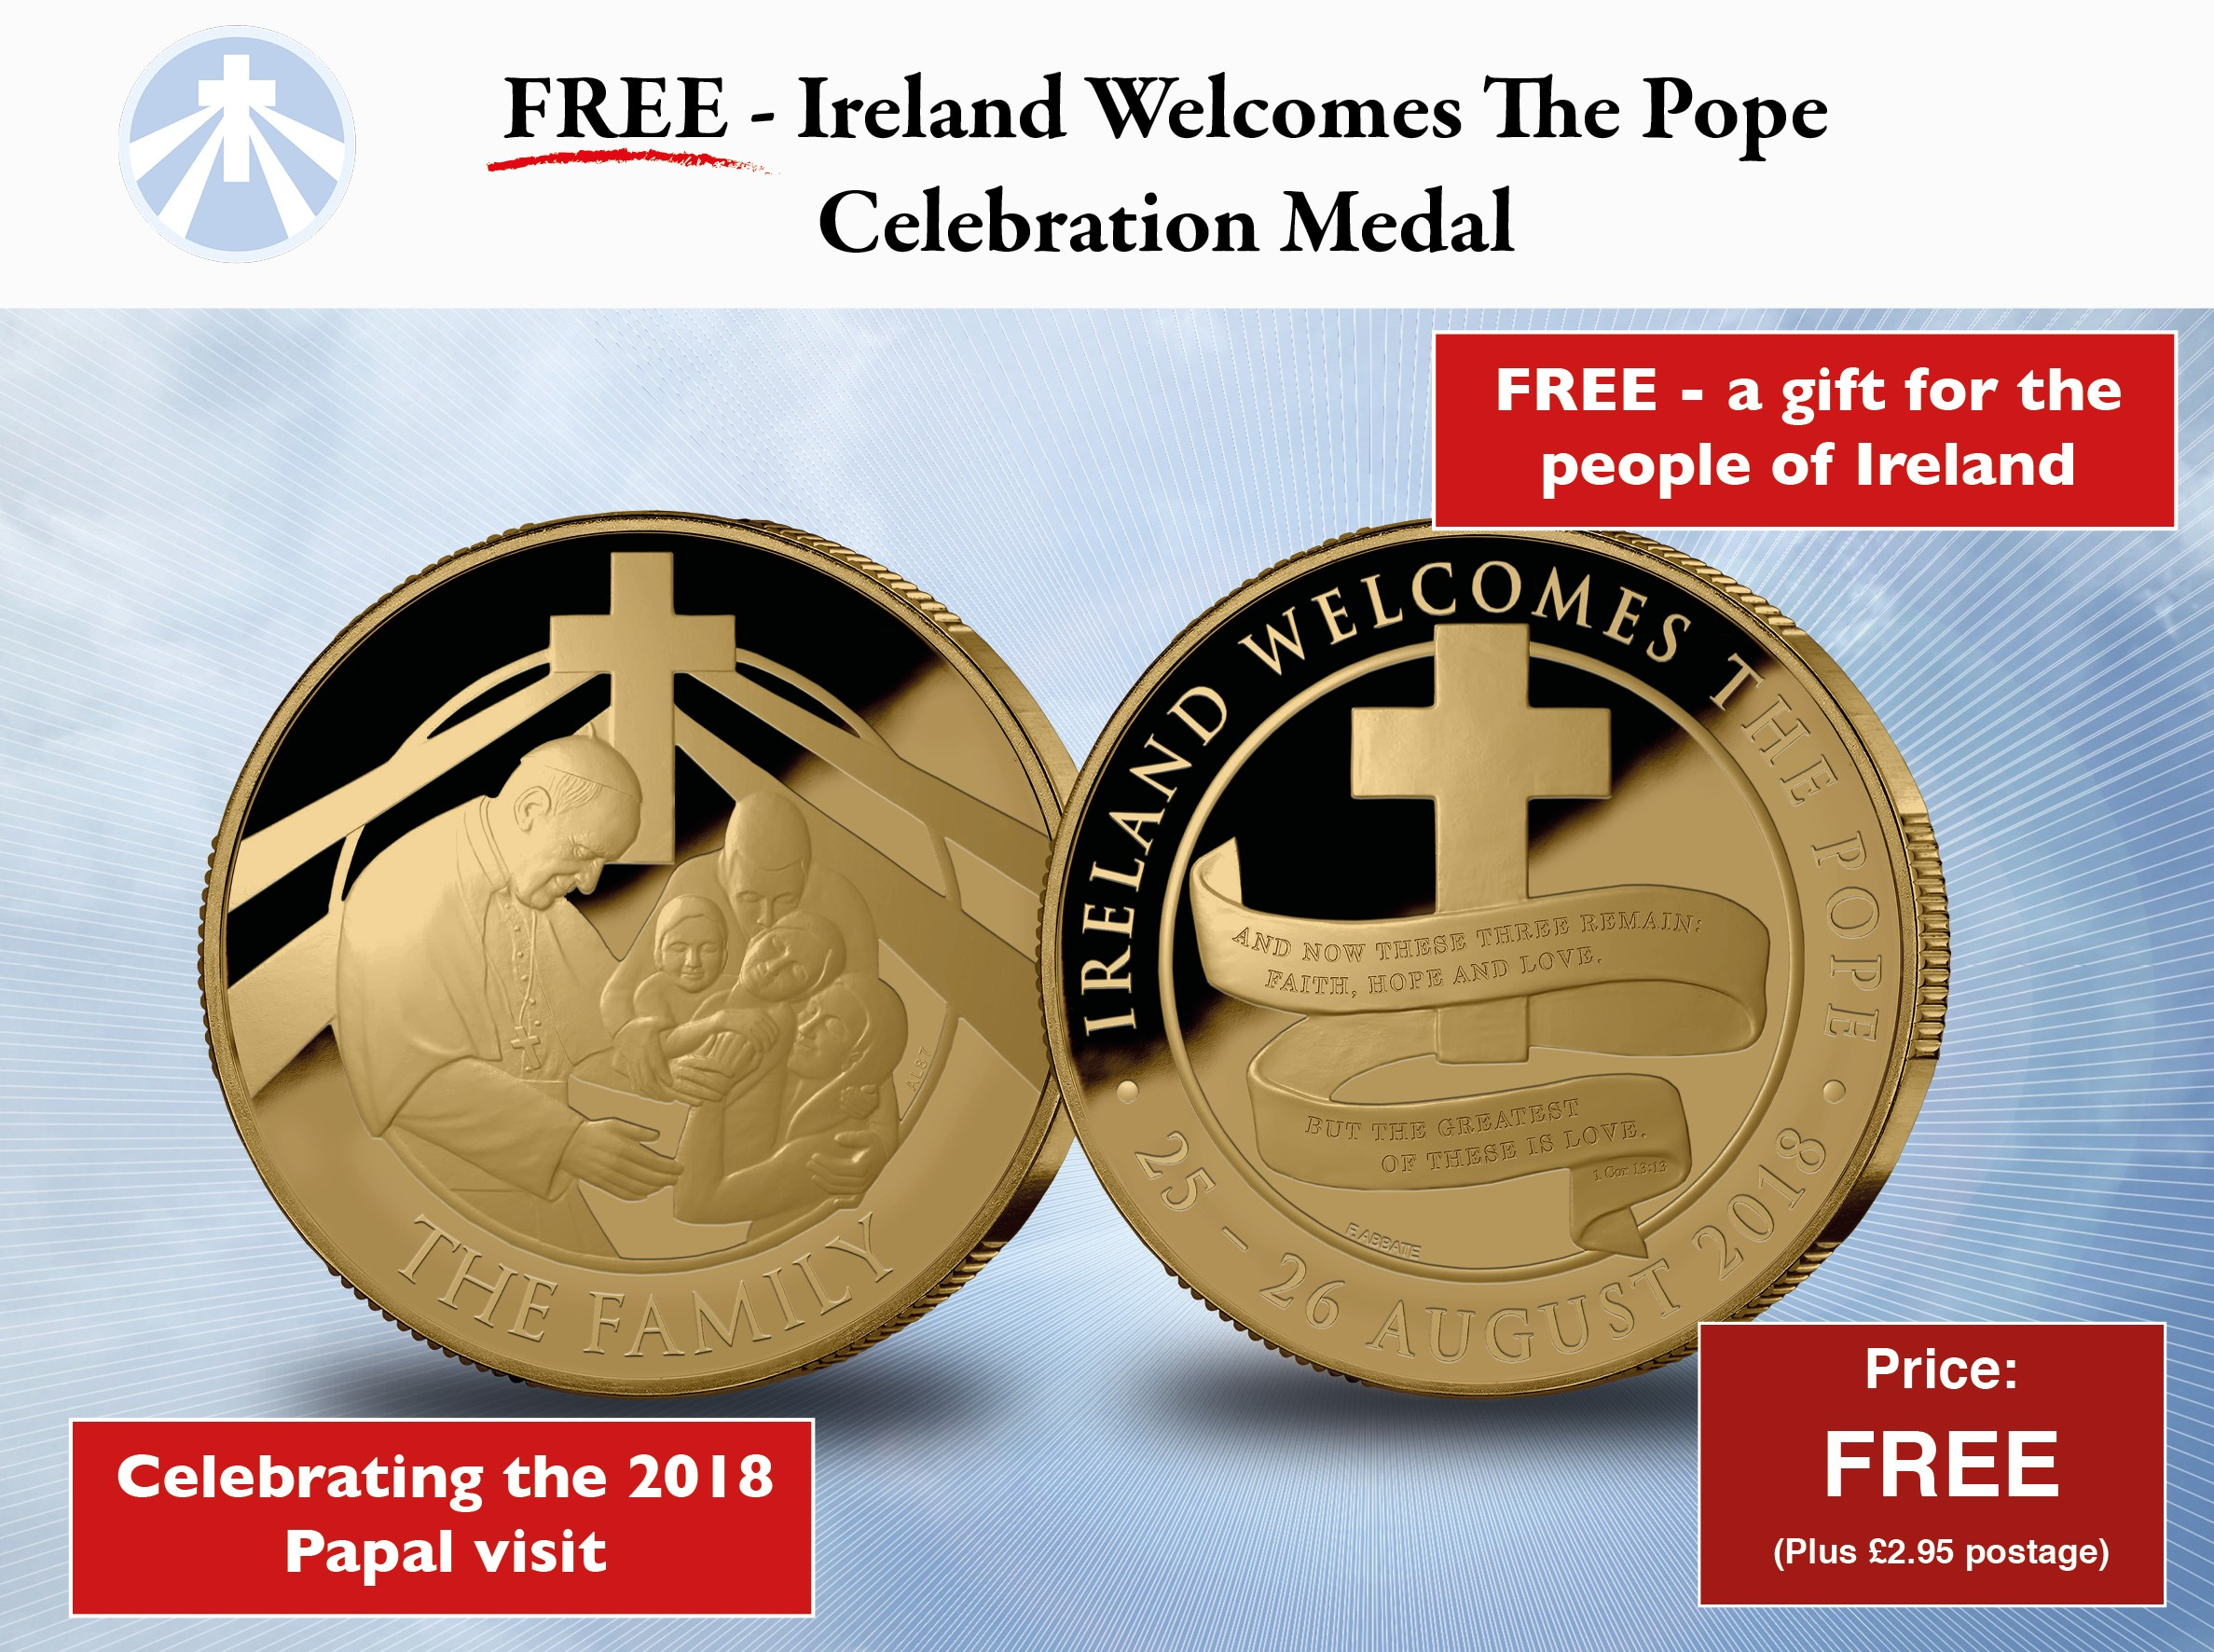 Ireland Welcomes the Pope 2018 Celebration Medal